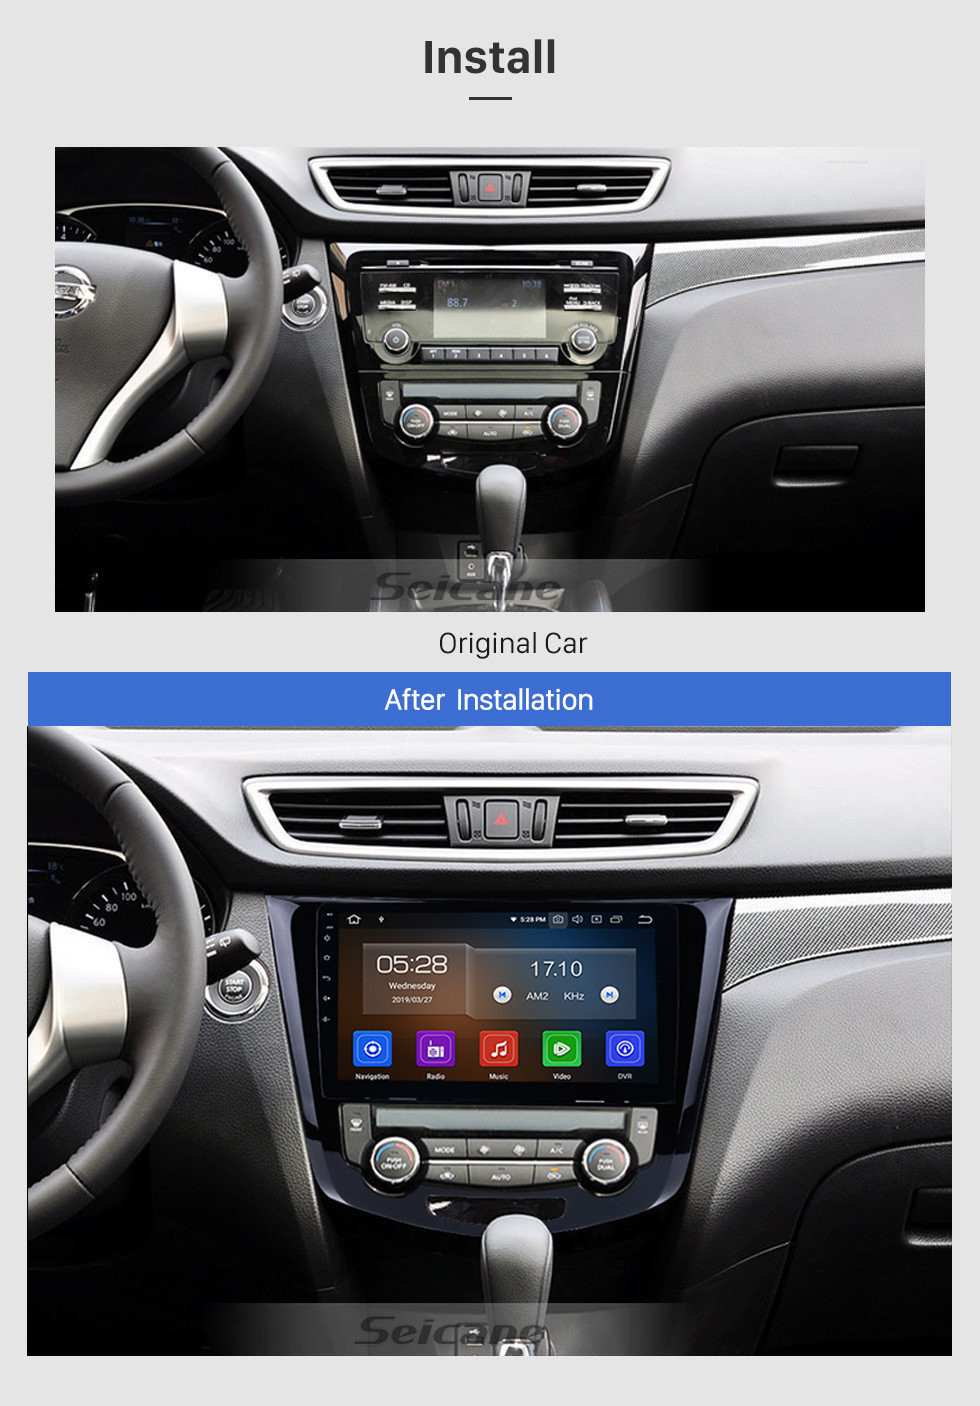 Seicane 10.1 inch HD touchscreen Radio GPS Navigation Android 10.0 for 2014 2015 Nissan X-TRAIL Support Bluetooth TV USB OBD2 WIFI Video Mirror Link DVR Steering Wheel Control